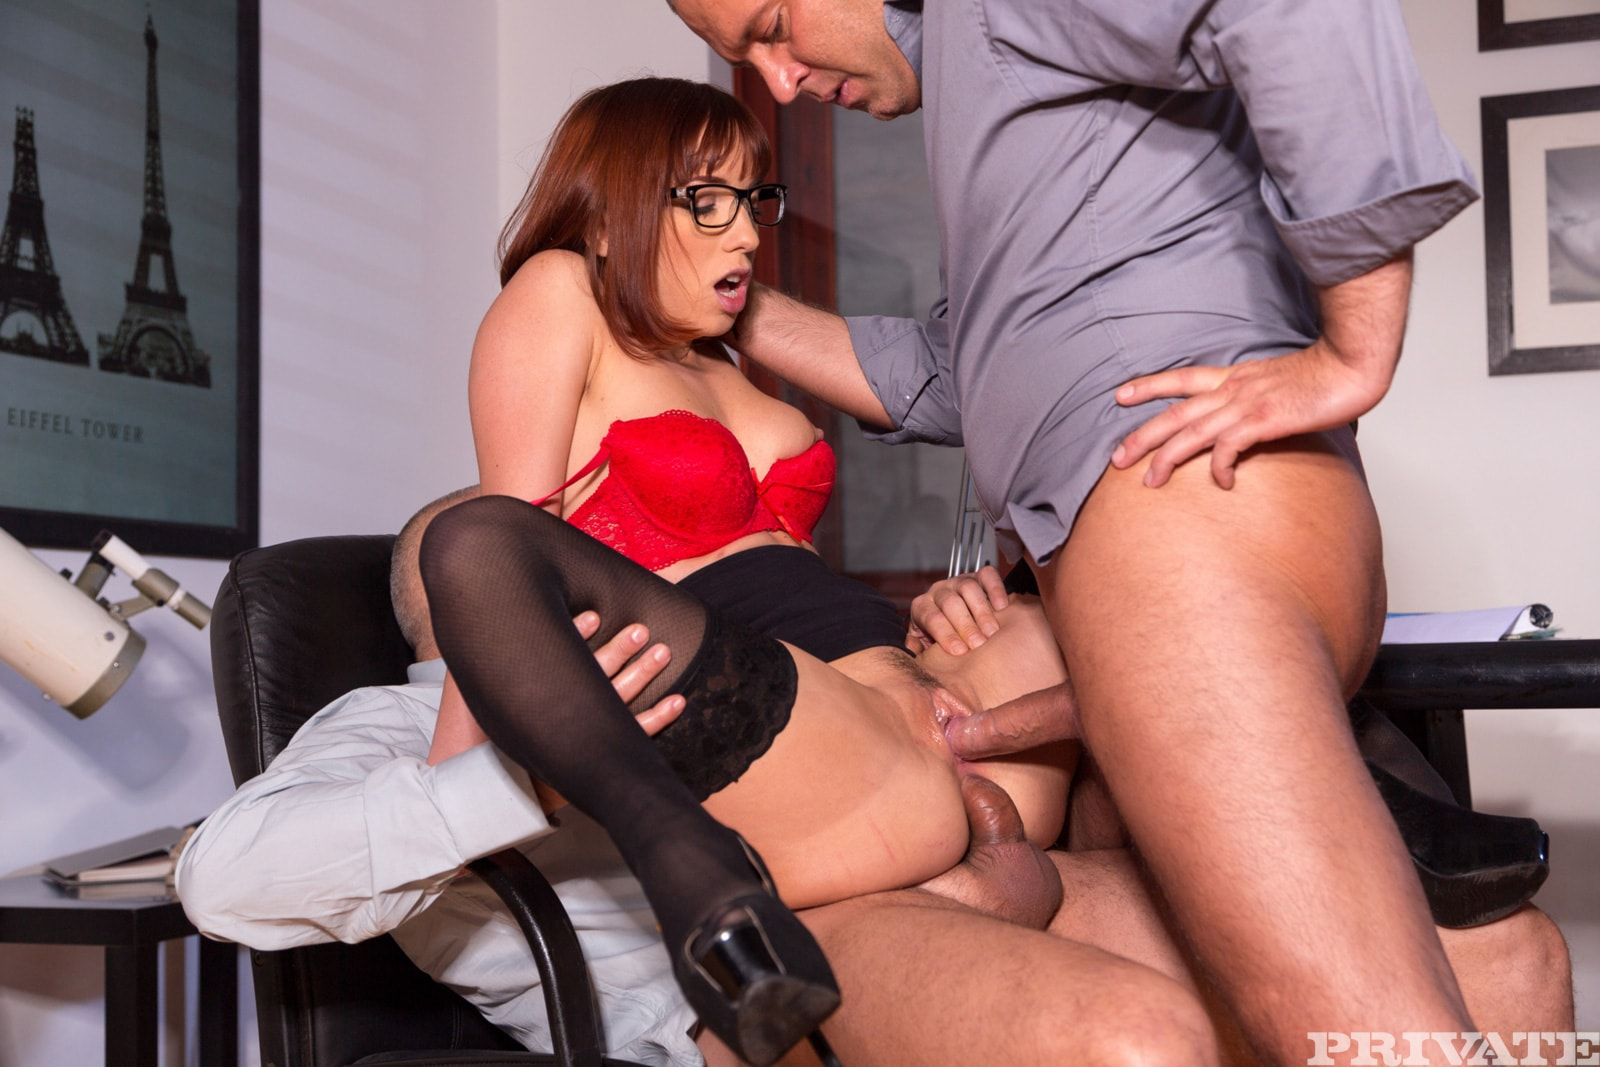 Naughty girl having group sex in the office